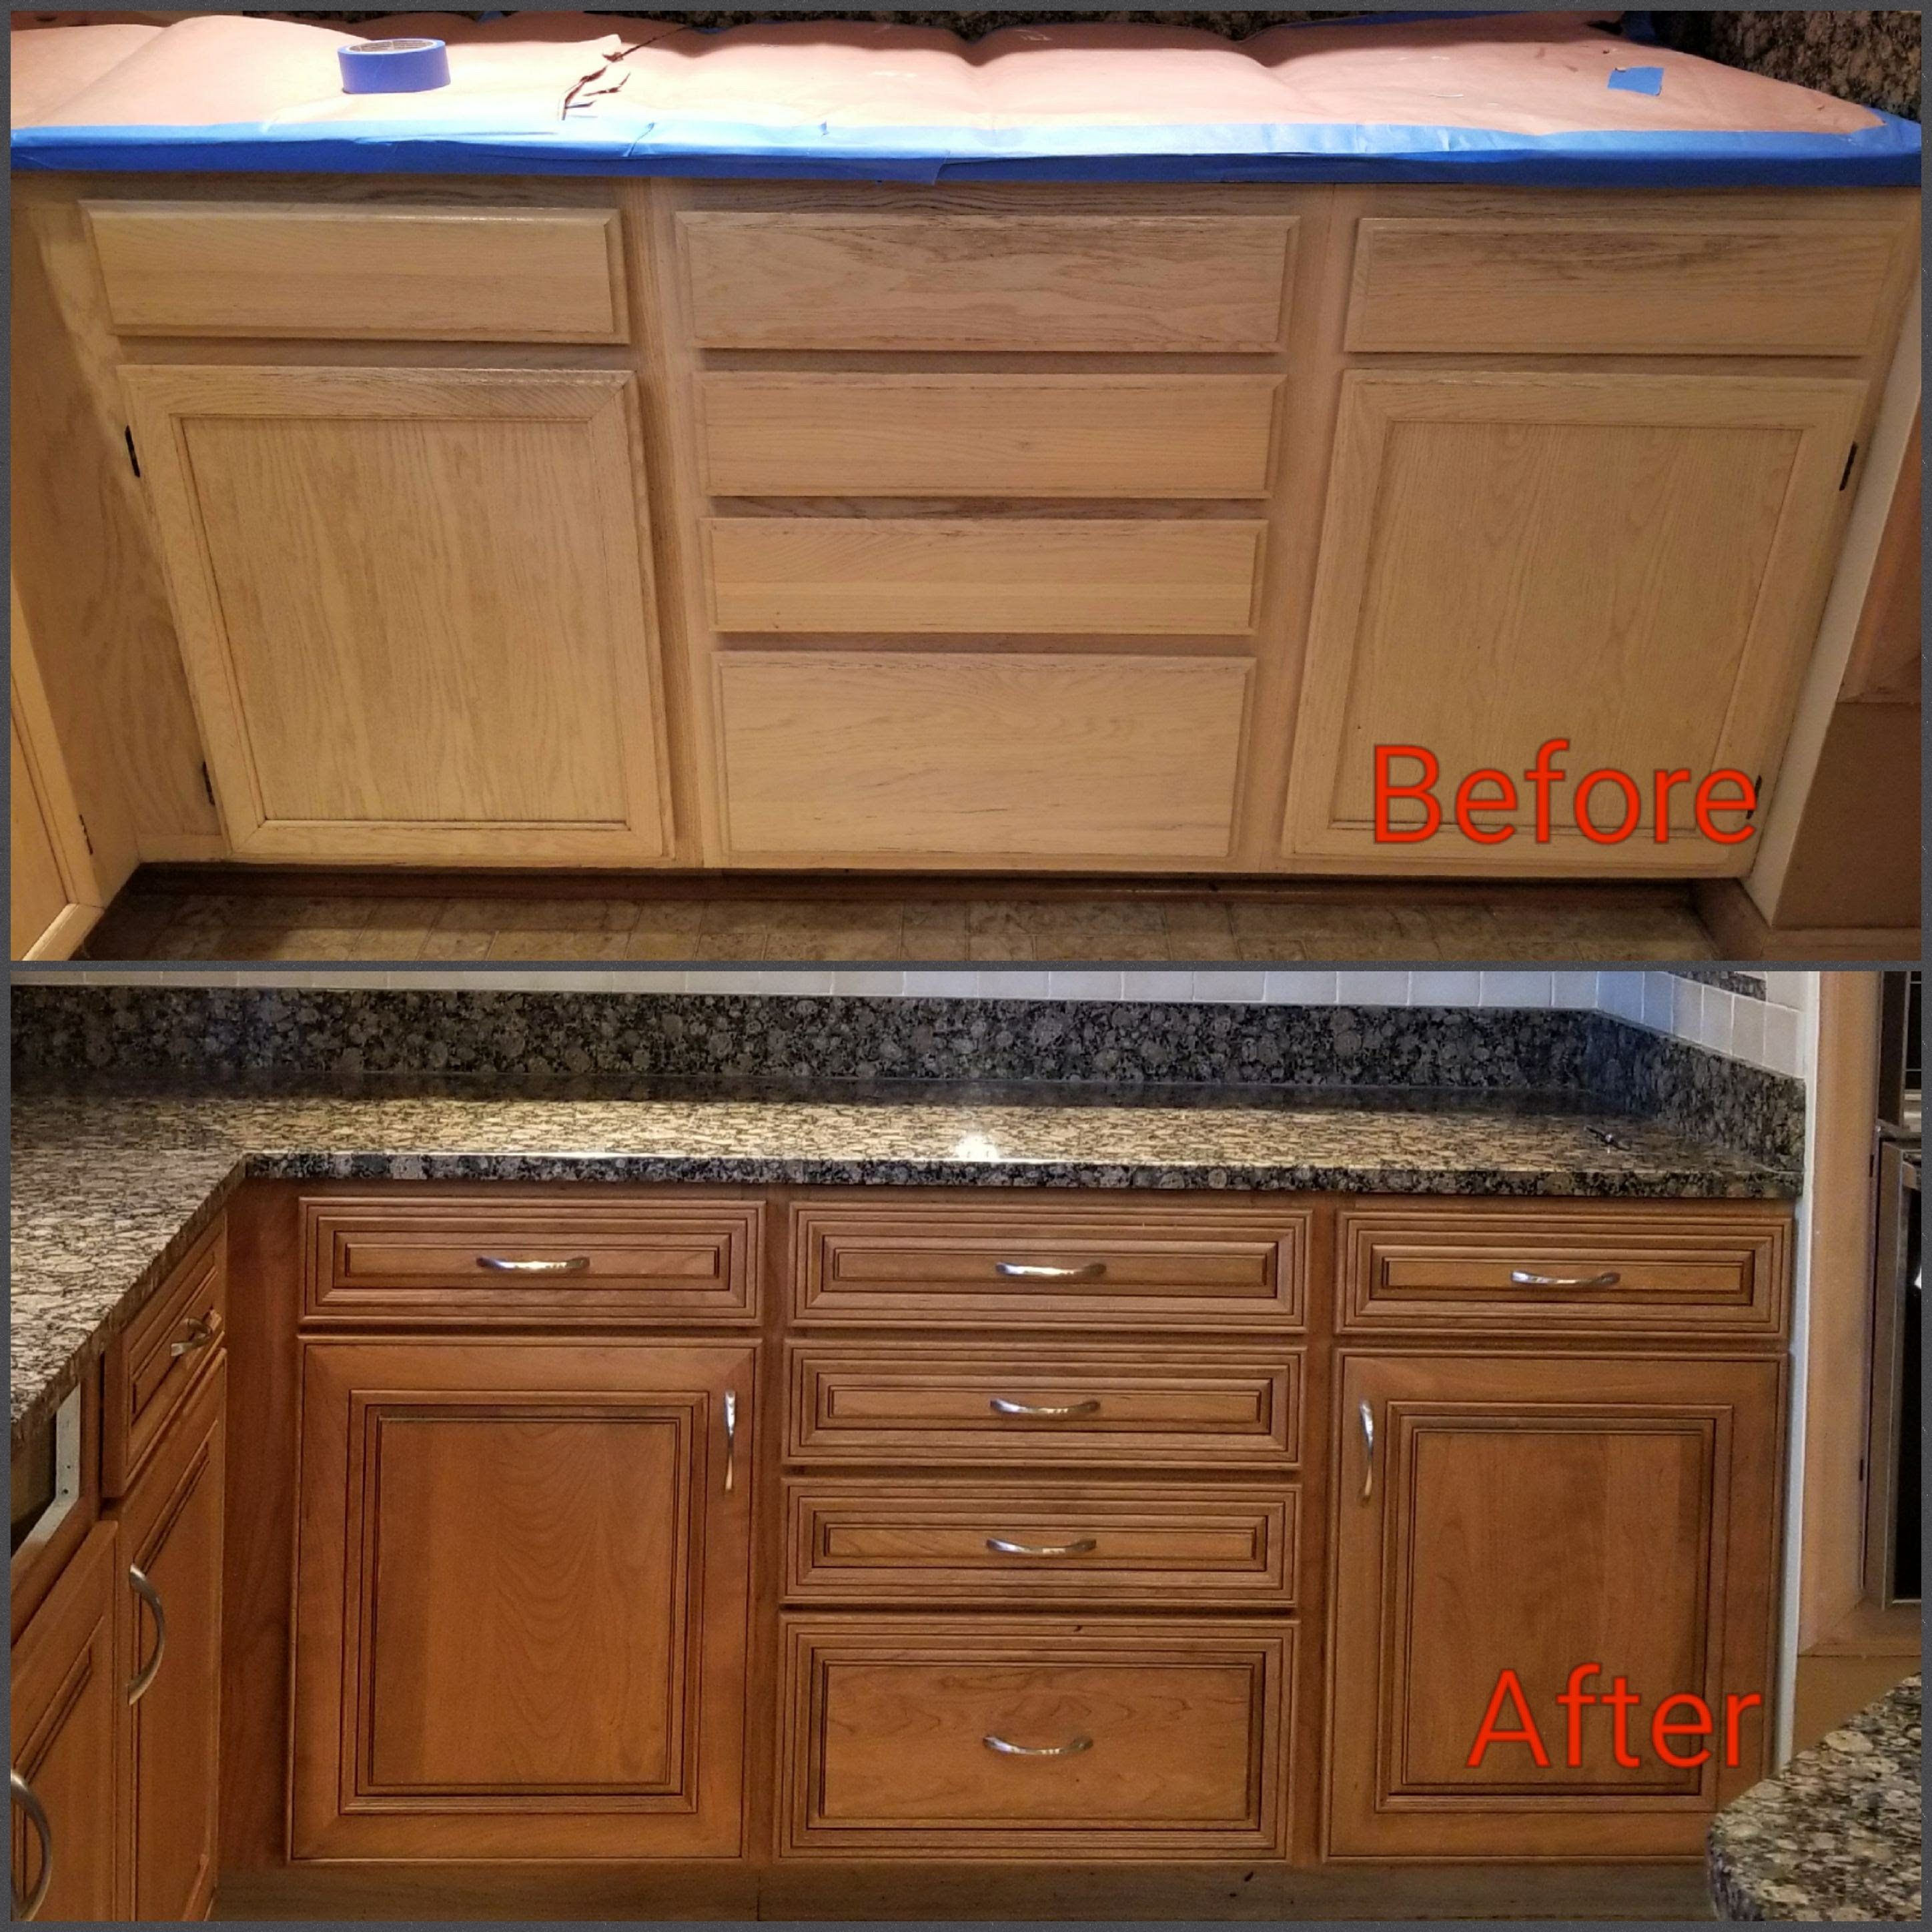 Before and After:  Pickled oak cabinets refaced with cherry glazed doors.